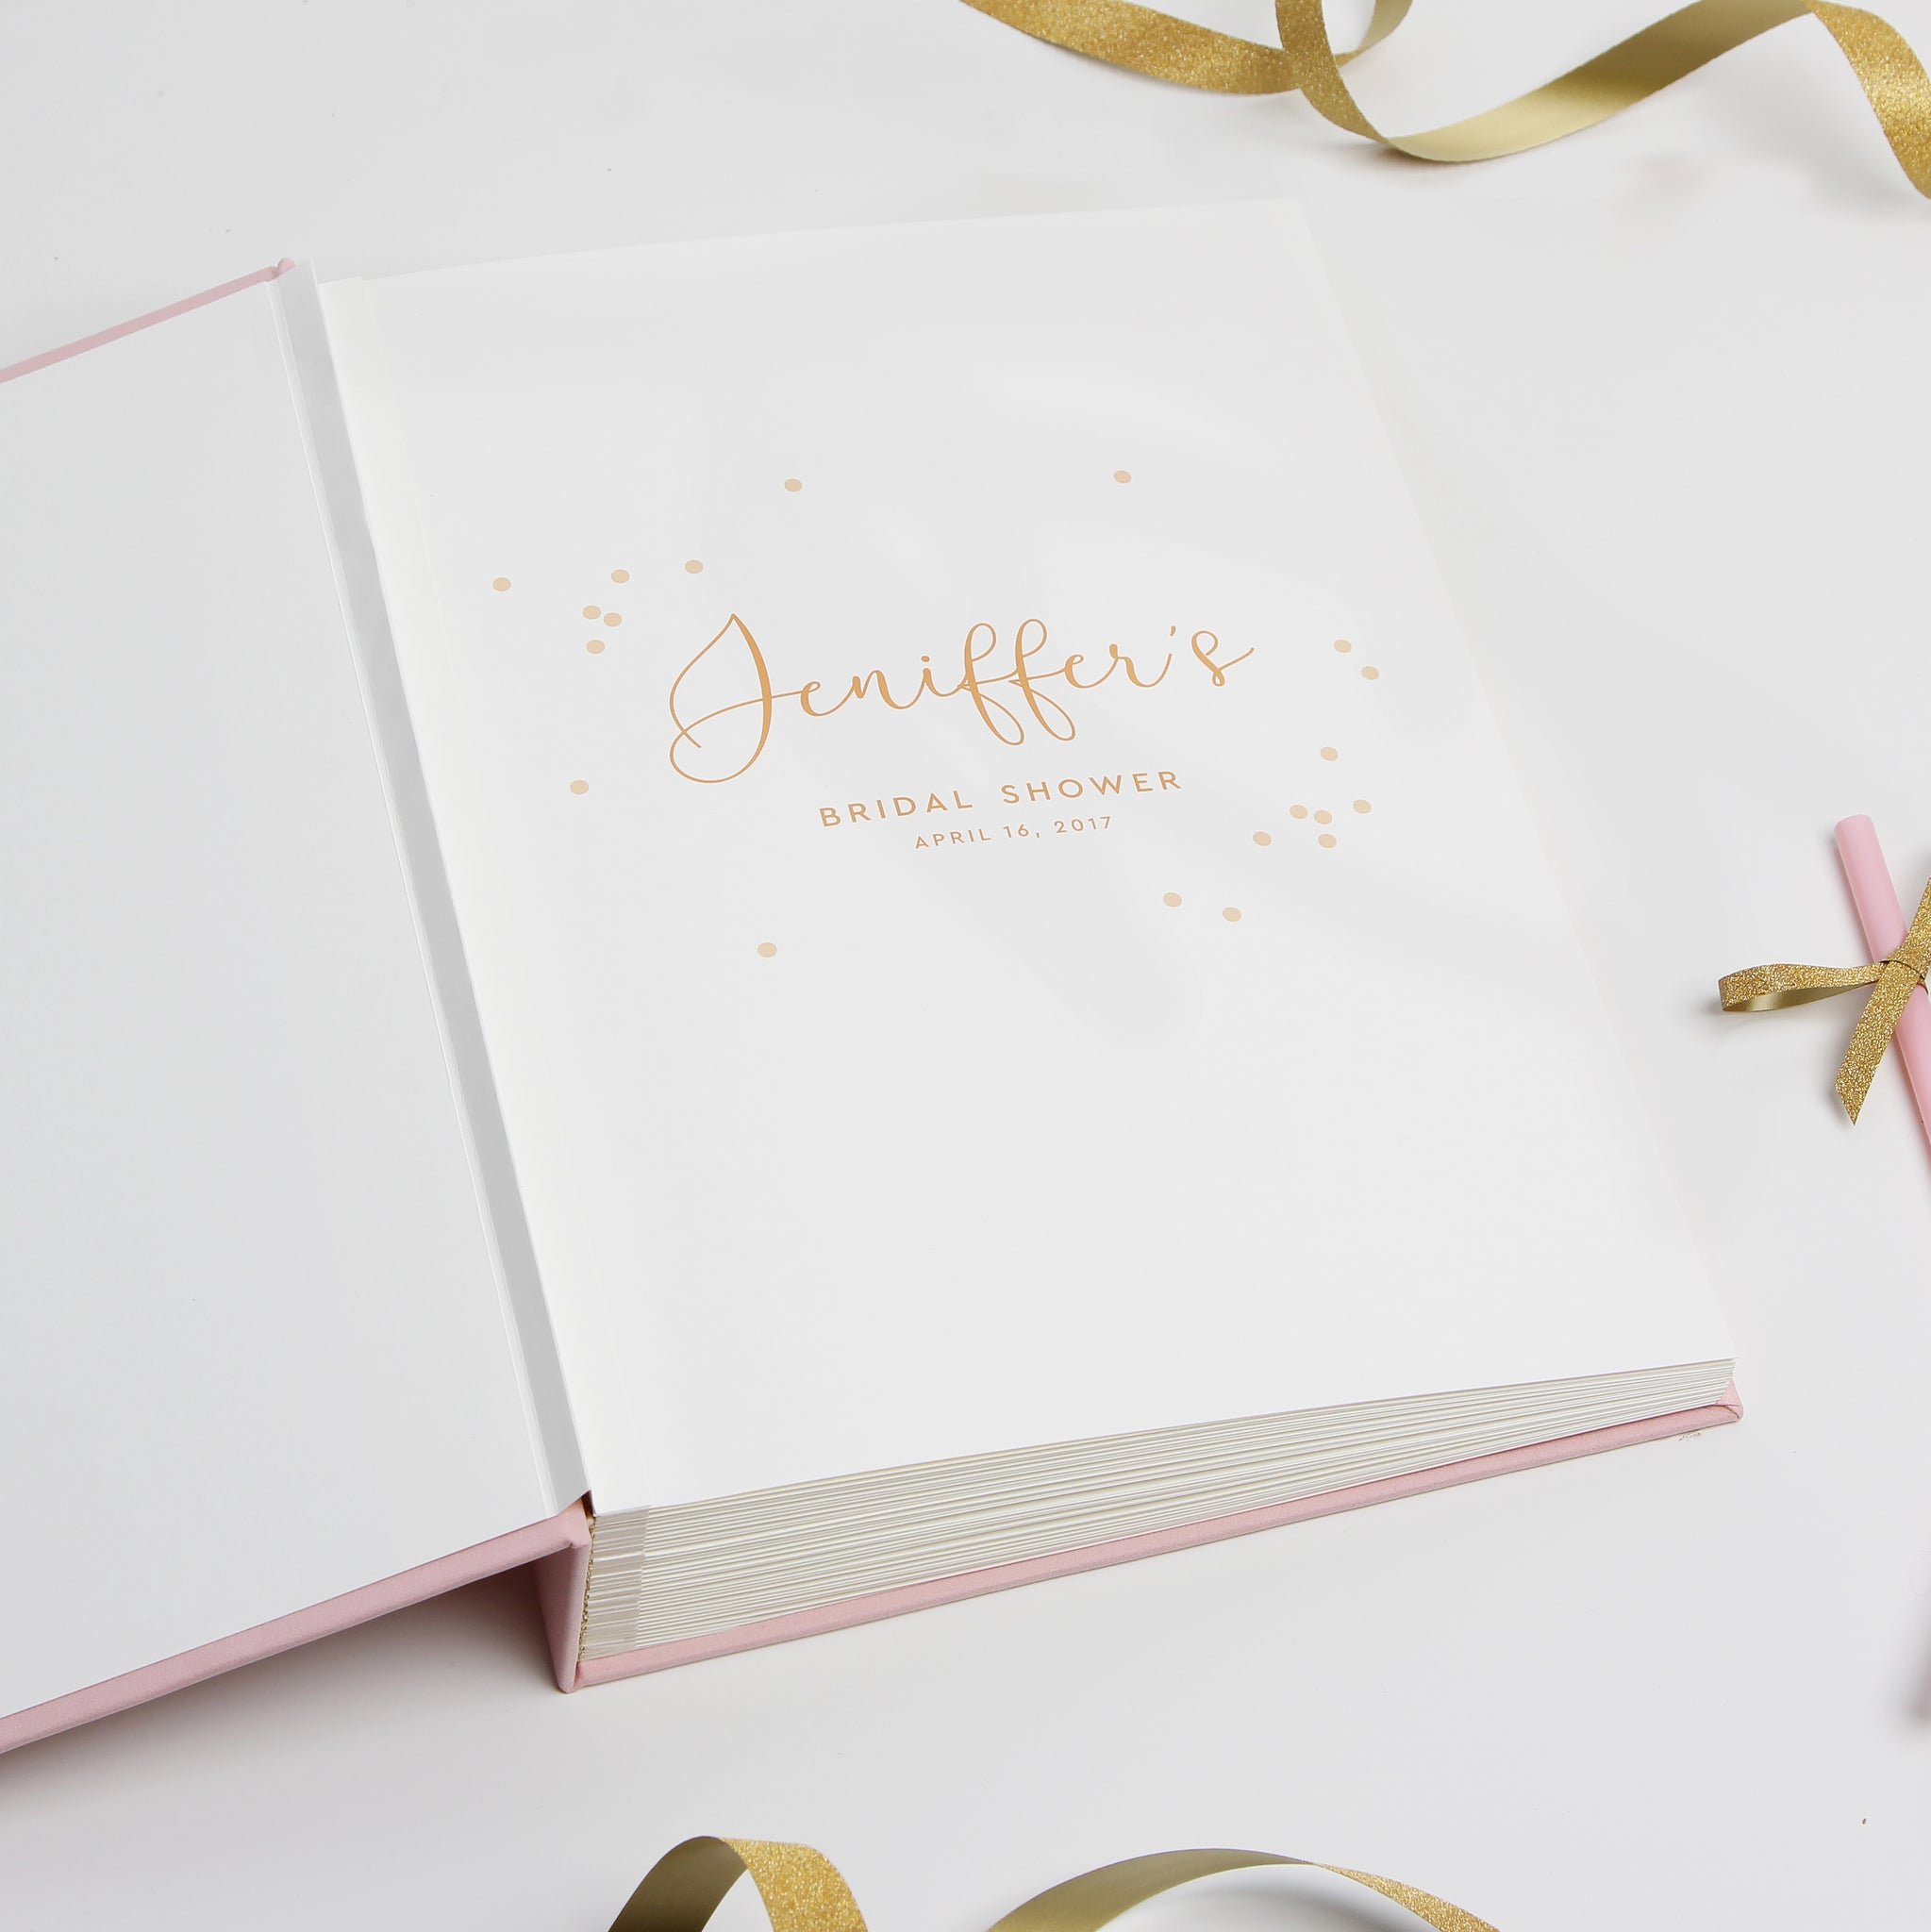 Personalized Bridal Shower Guest Book - Pink Album with Gold Glitter Foil for Hen Party - Liumy